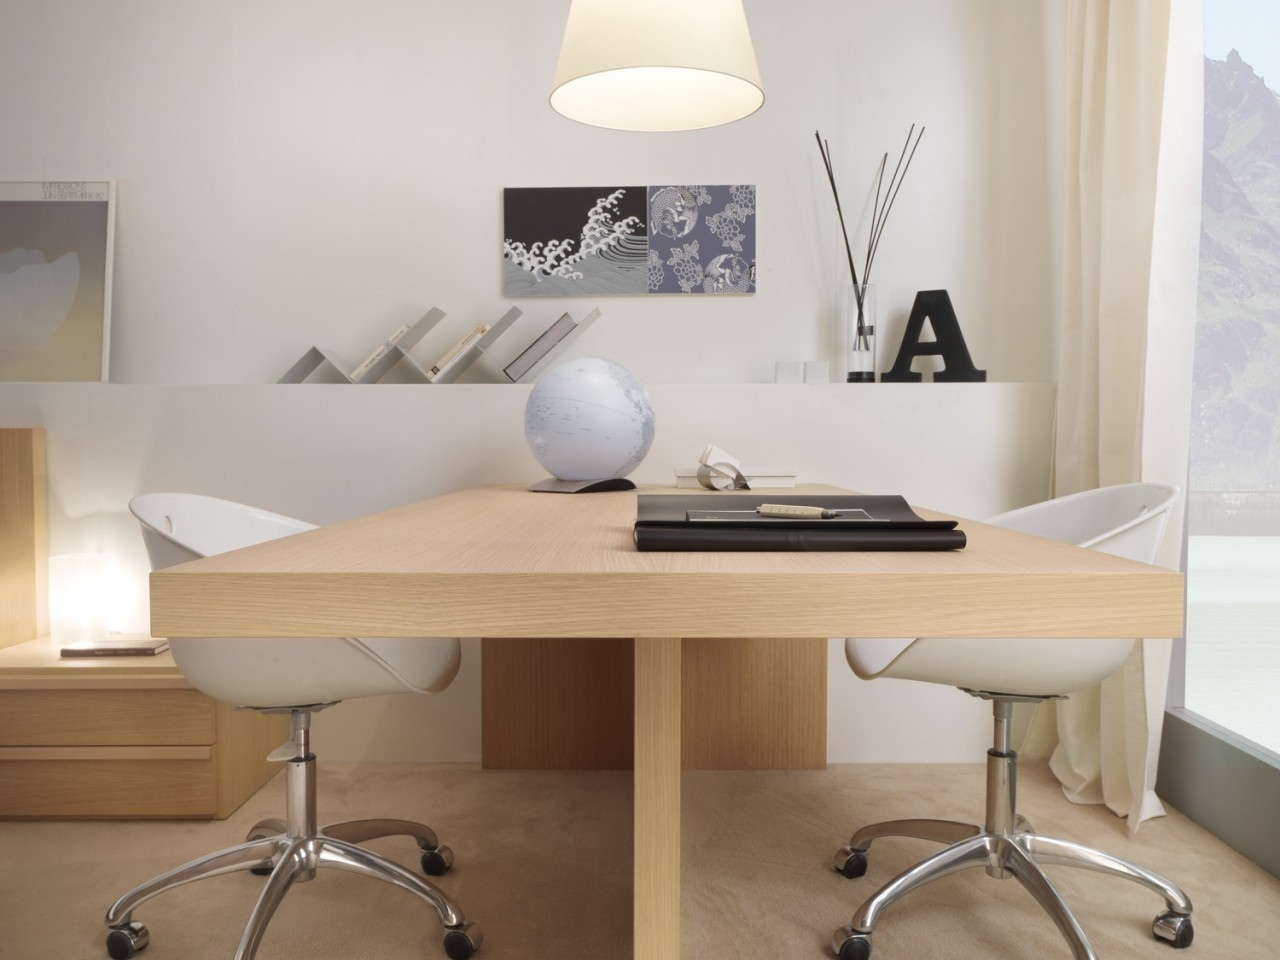 30 inspirational home office desks - Office Desk Design Ideas